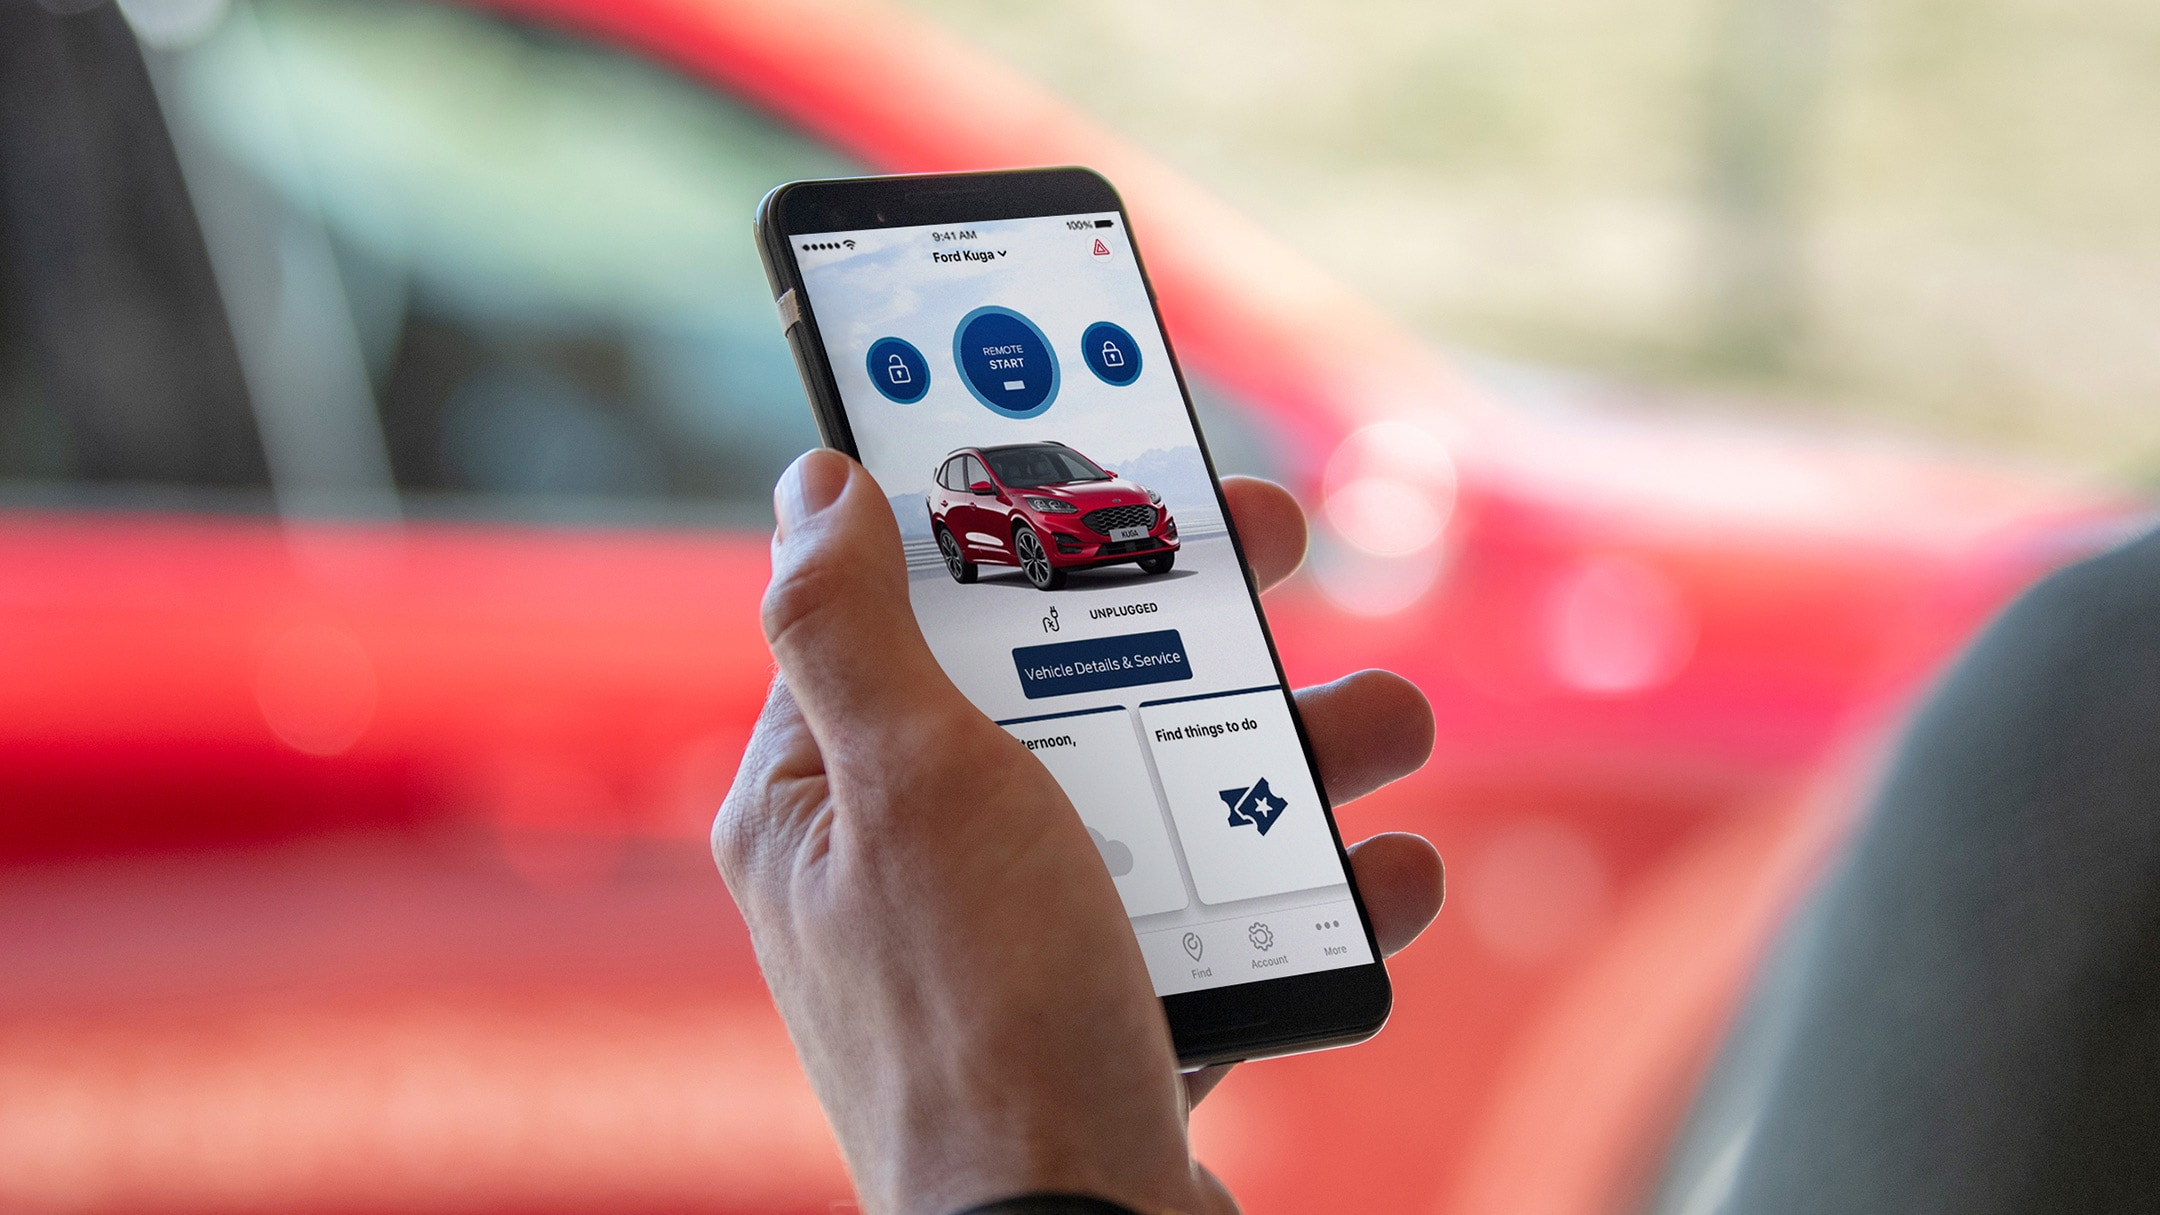 FordPass App being shown on phone